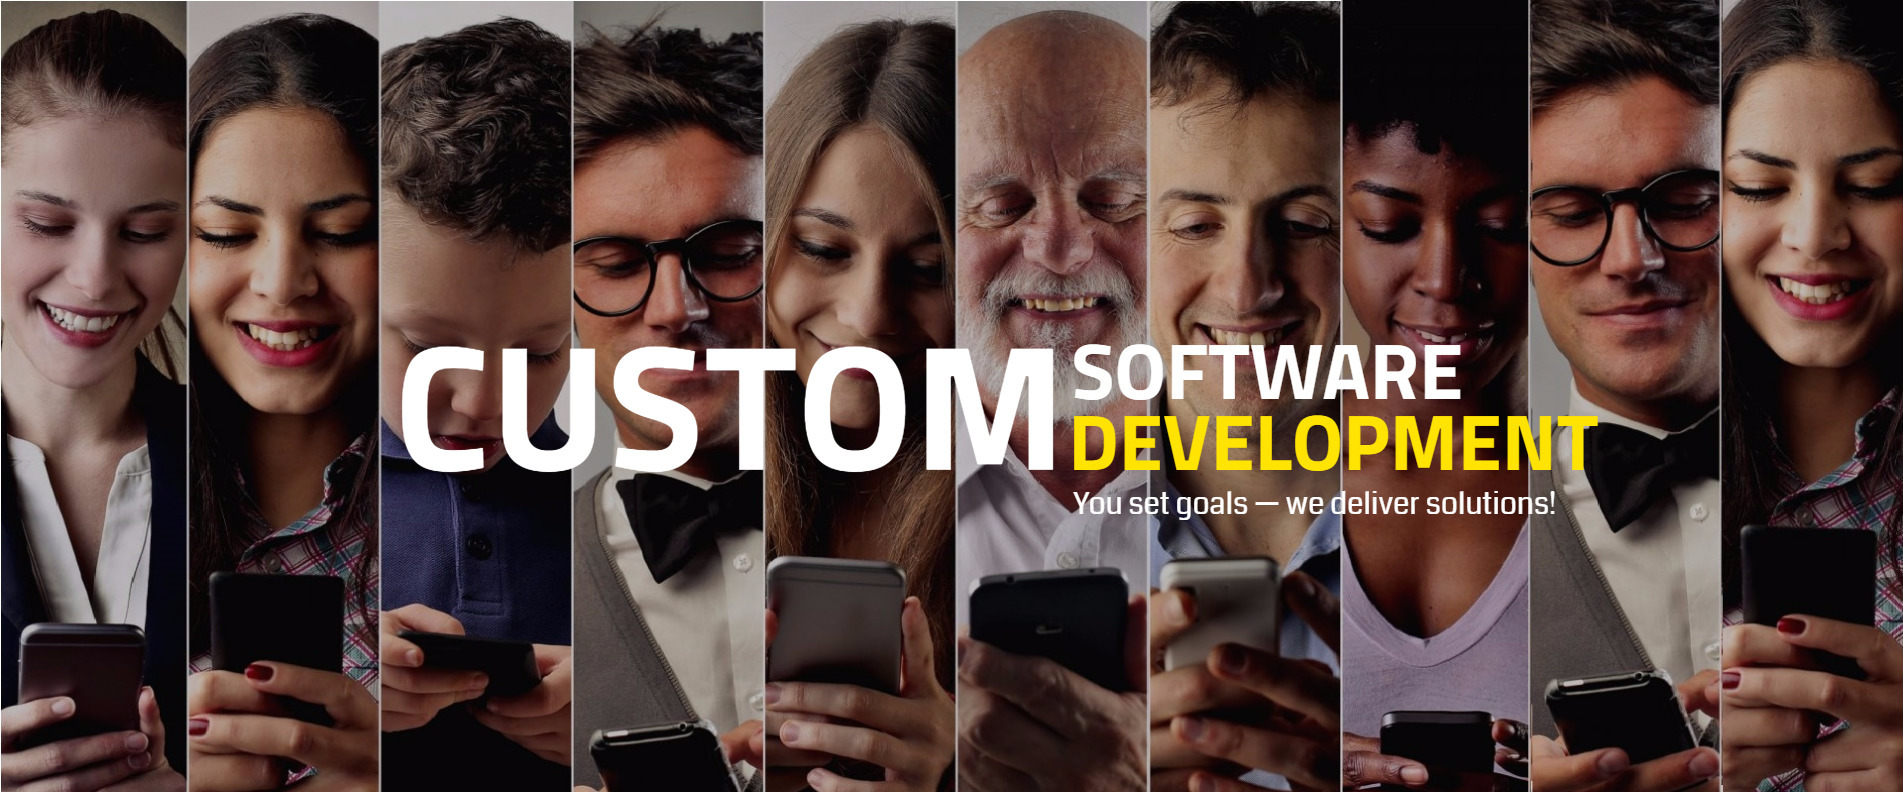 SoftwareDevelopmentUAE (@softwarecompanyuae) Cover Image